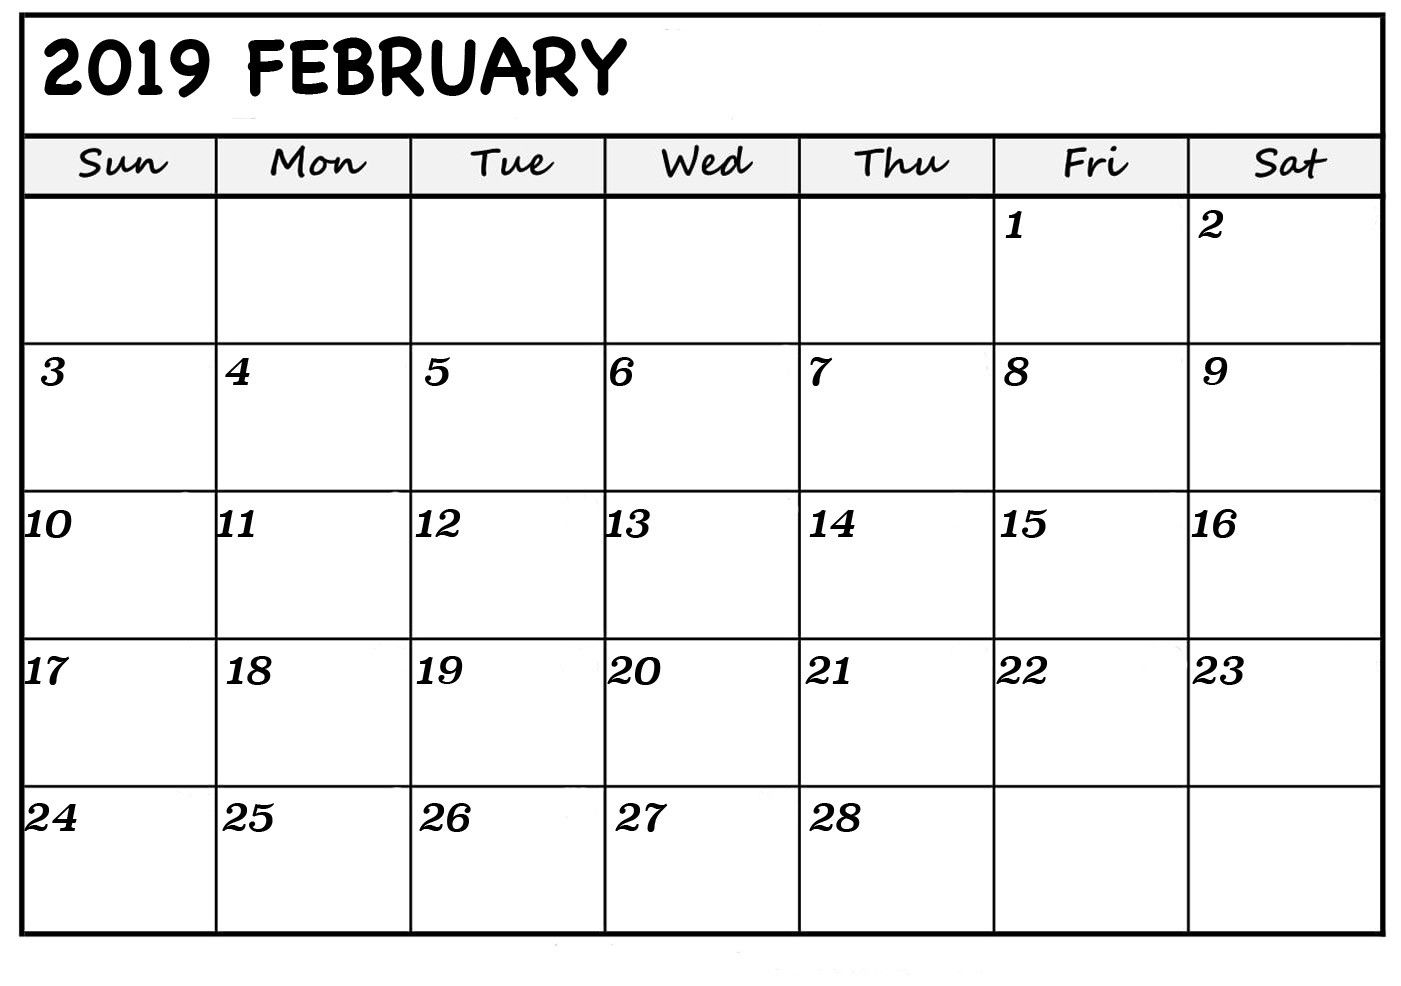 Blank Editable Calendar 2019 February 2019 Template Editable Calendar Download Free | December